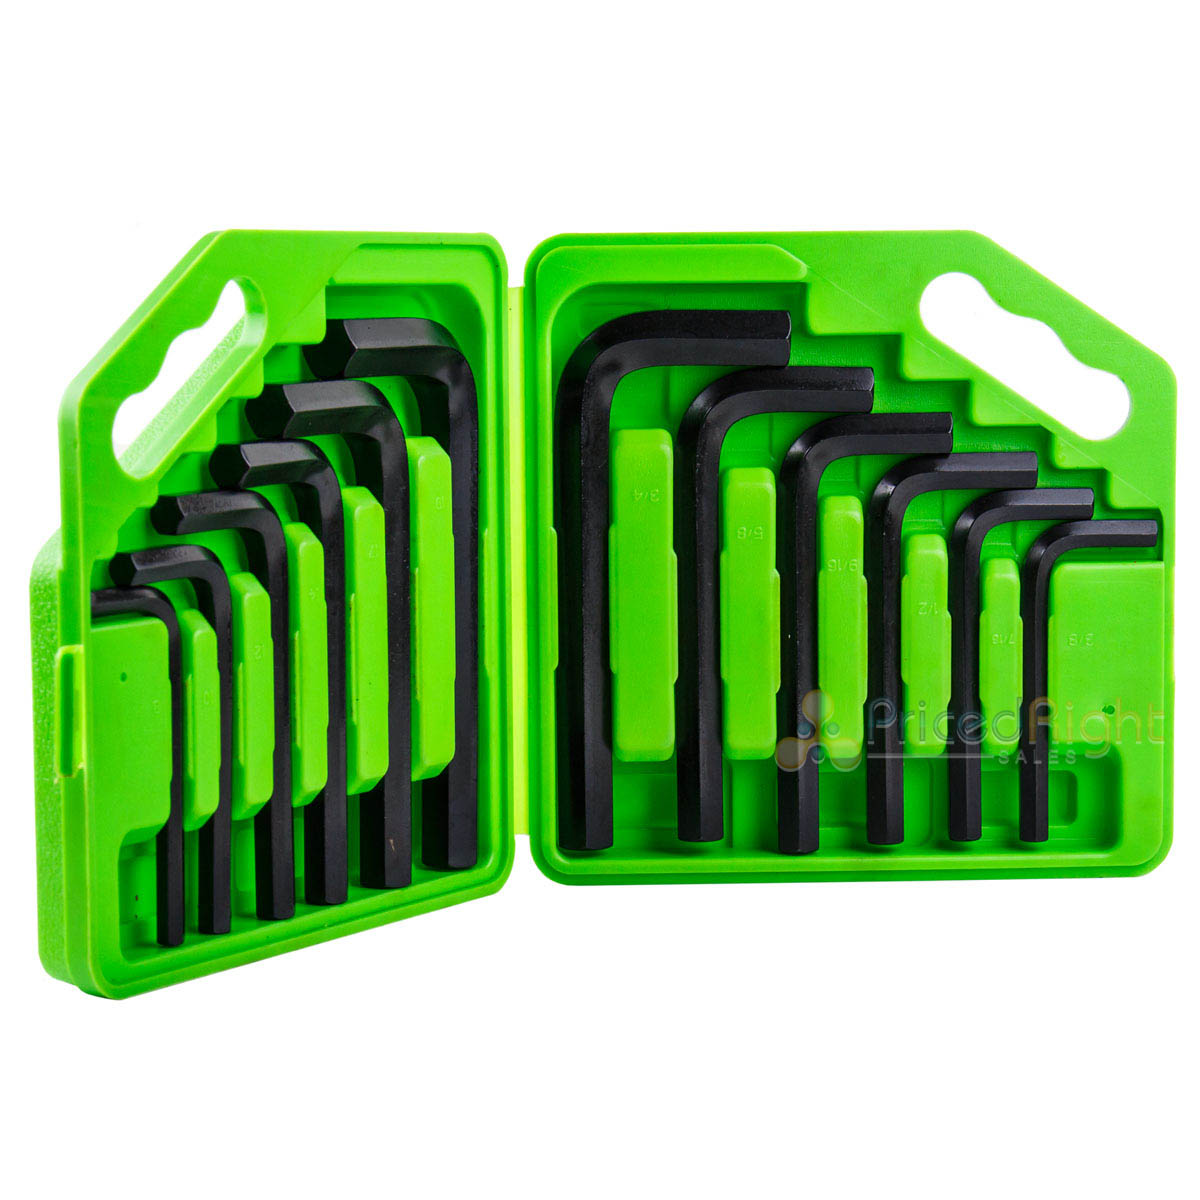 12 PC Piece Jumbo Hex Allen Key Wrench Set w/ Case Metric SAE Heat Treated Steel